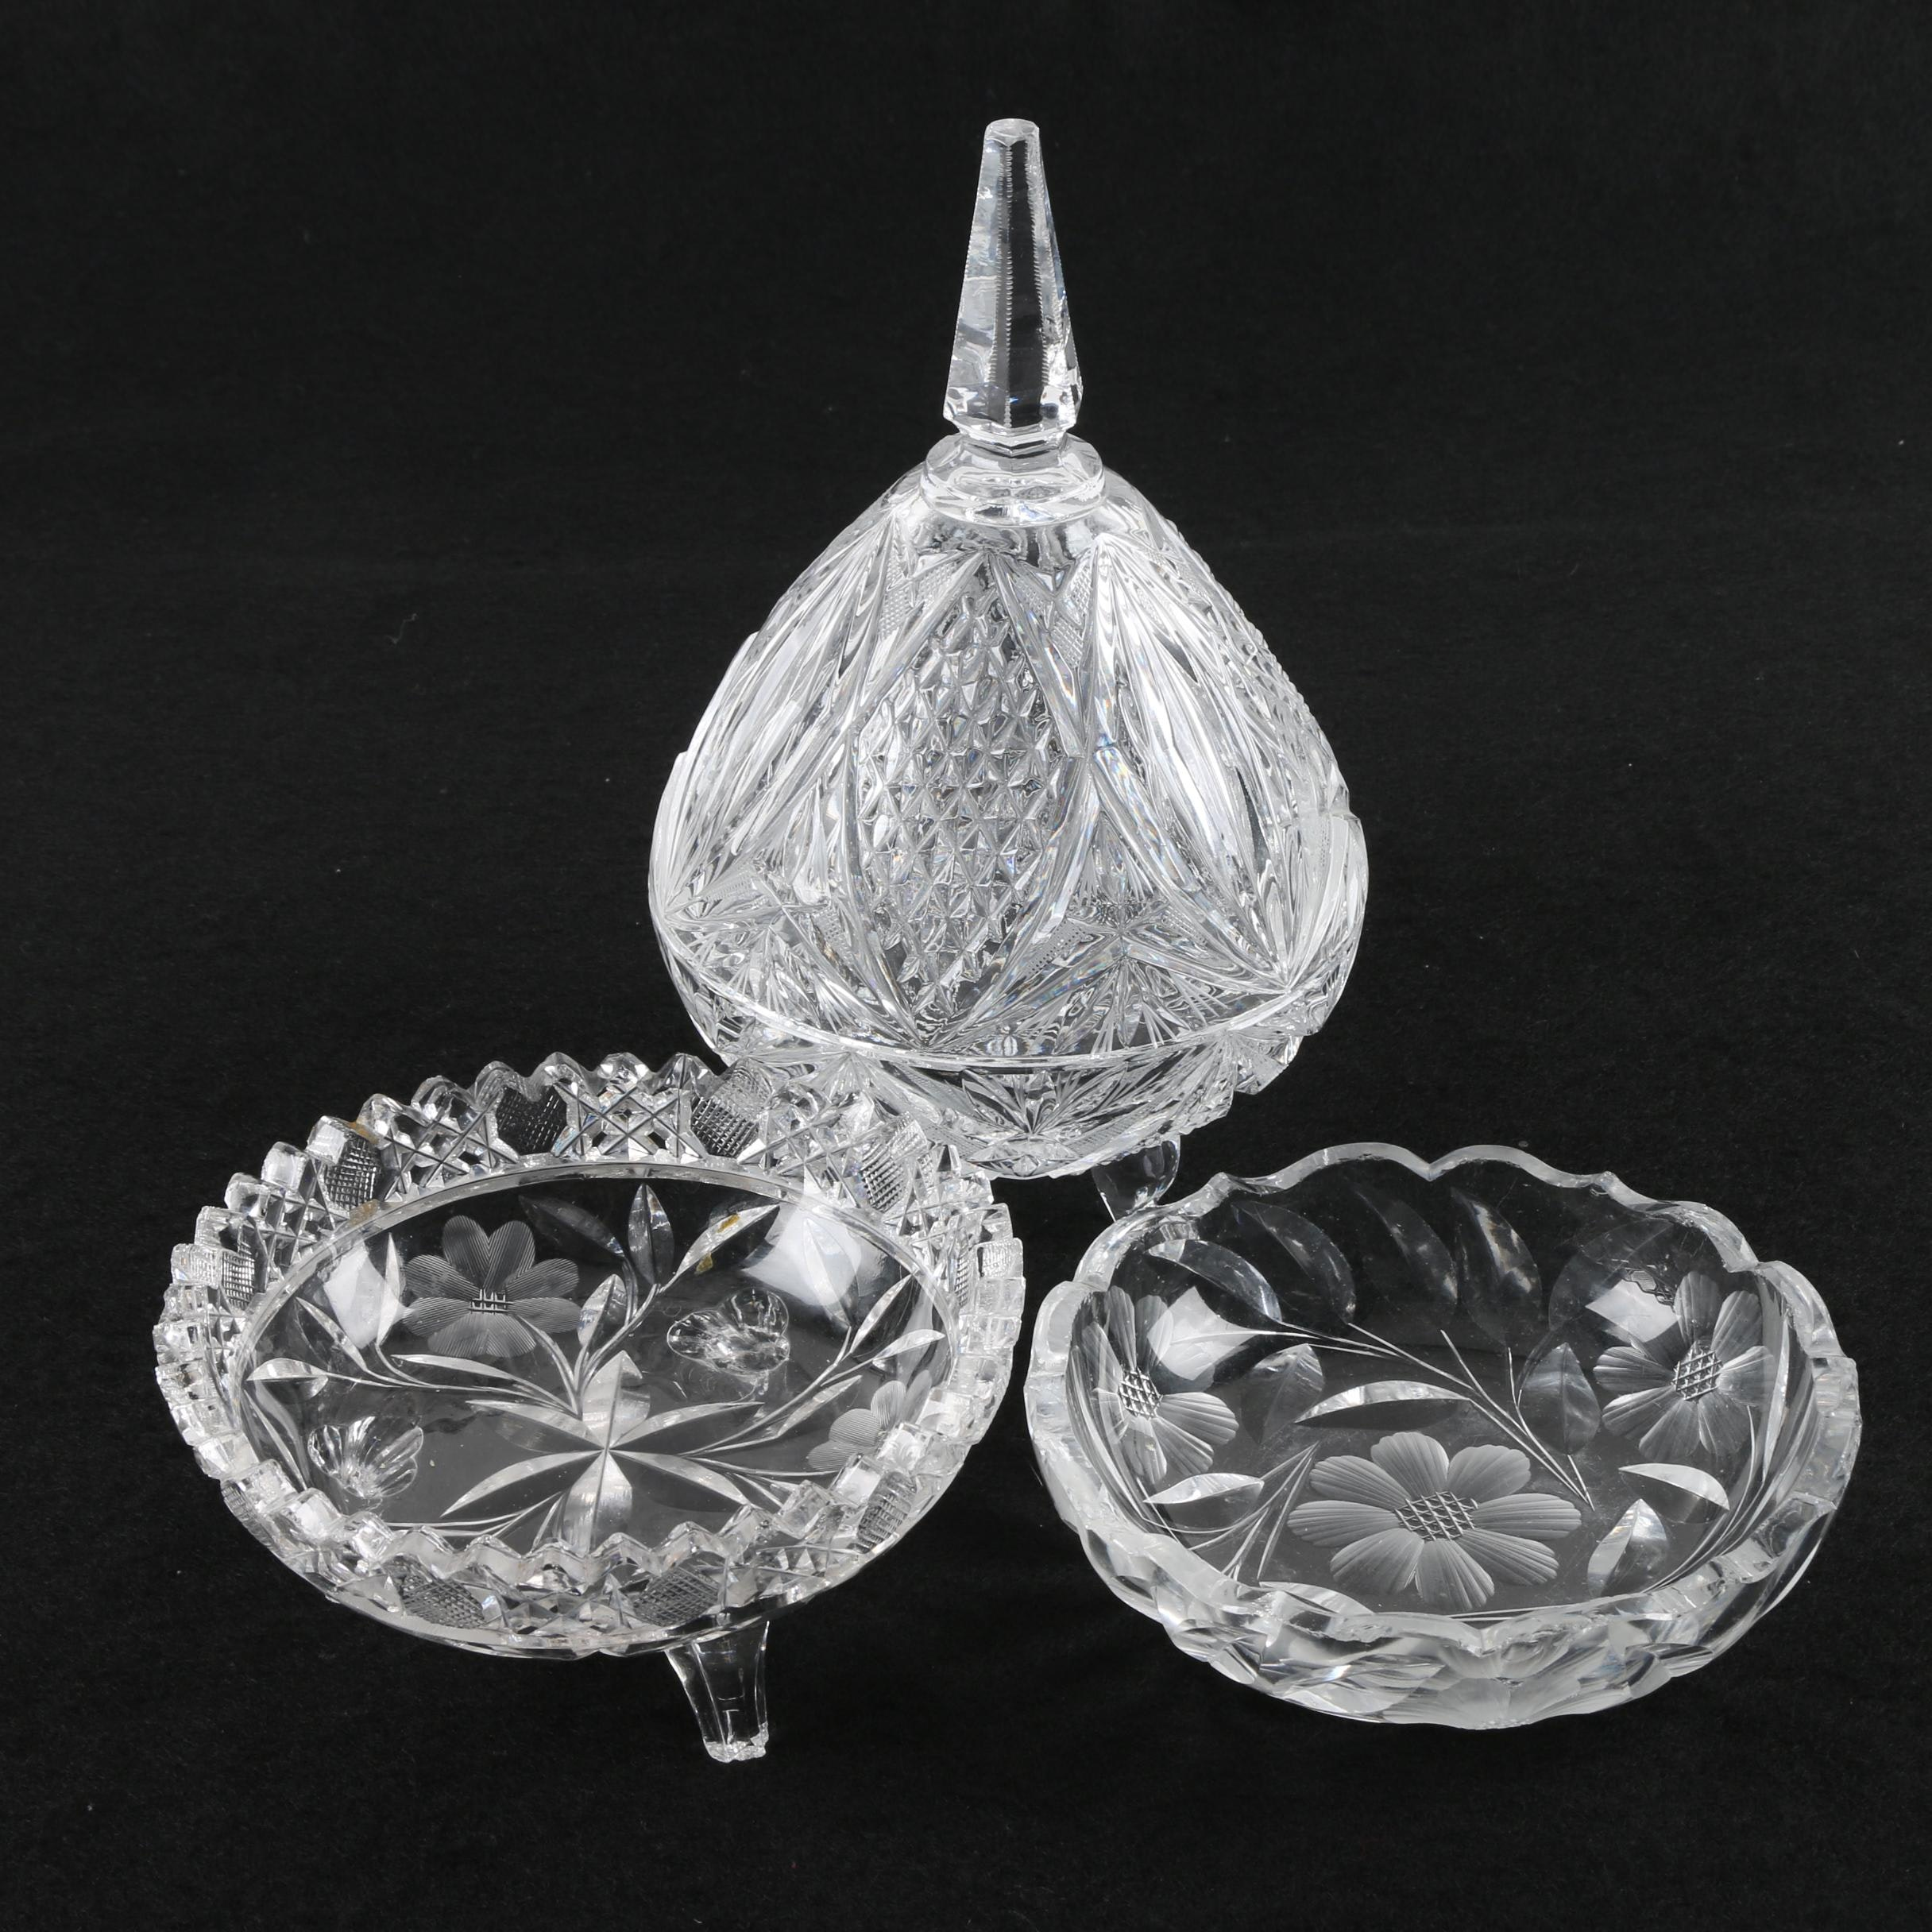 Floral Motif Crystal Candy Dishes